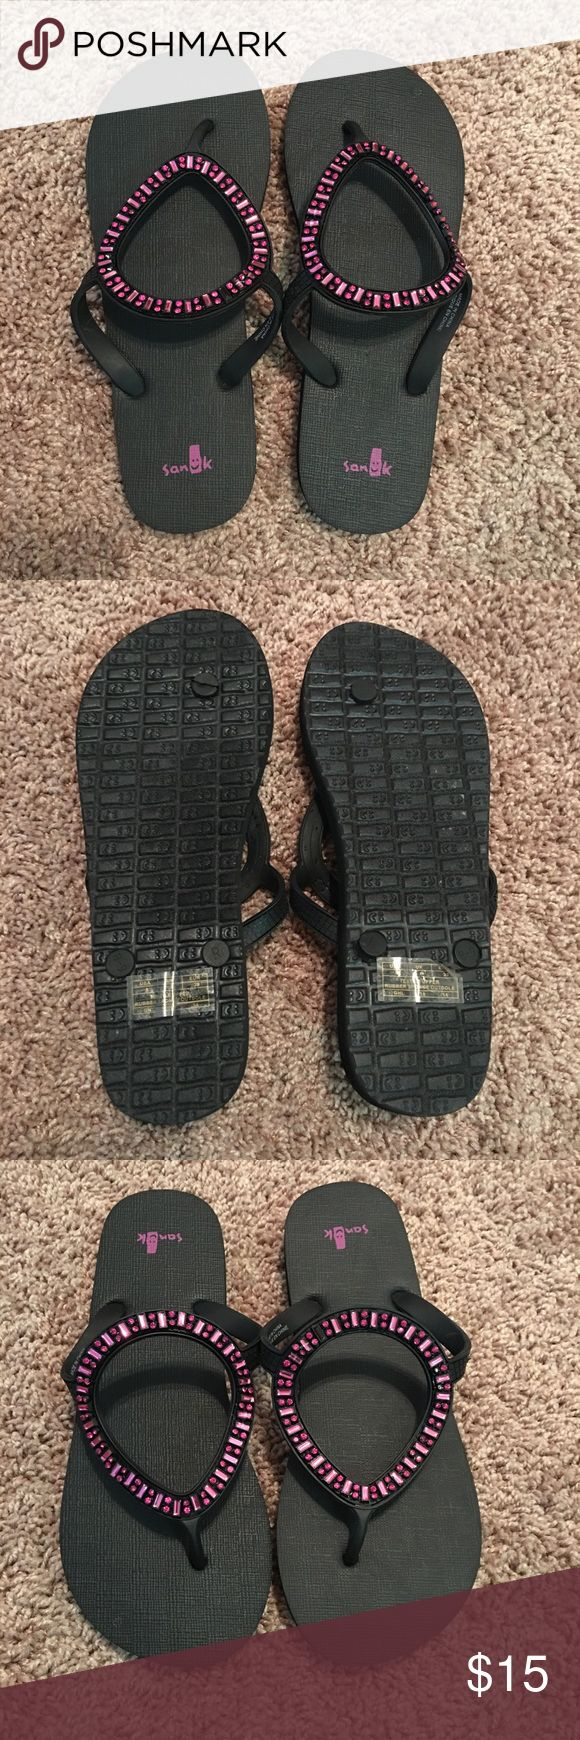 Black sanuk flip flops Brand new, never worn. Still has stickers! There is one gem on the left sandal that is dis colored, not missing! Sanuk Shoes Sandals